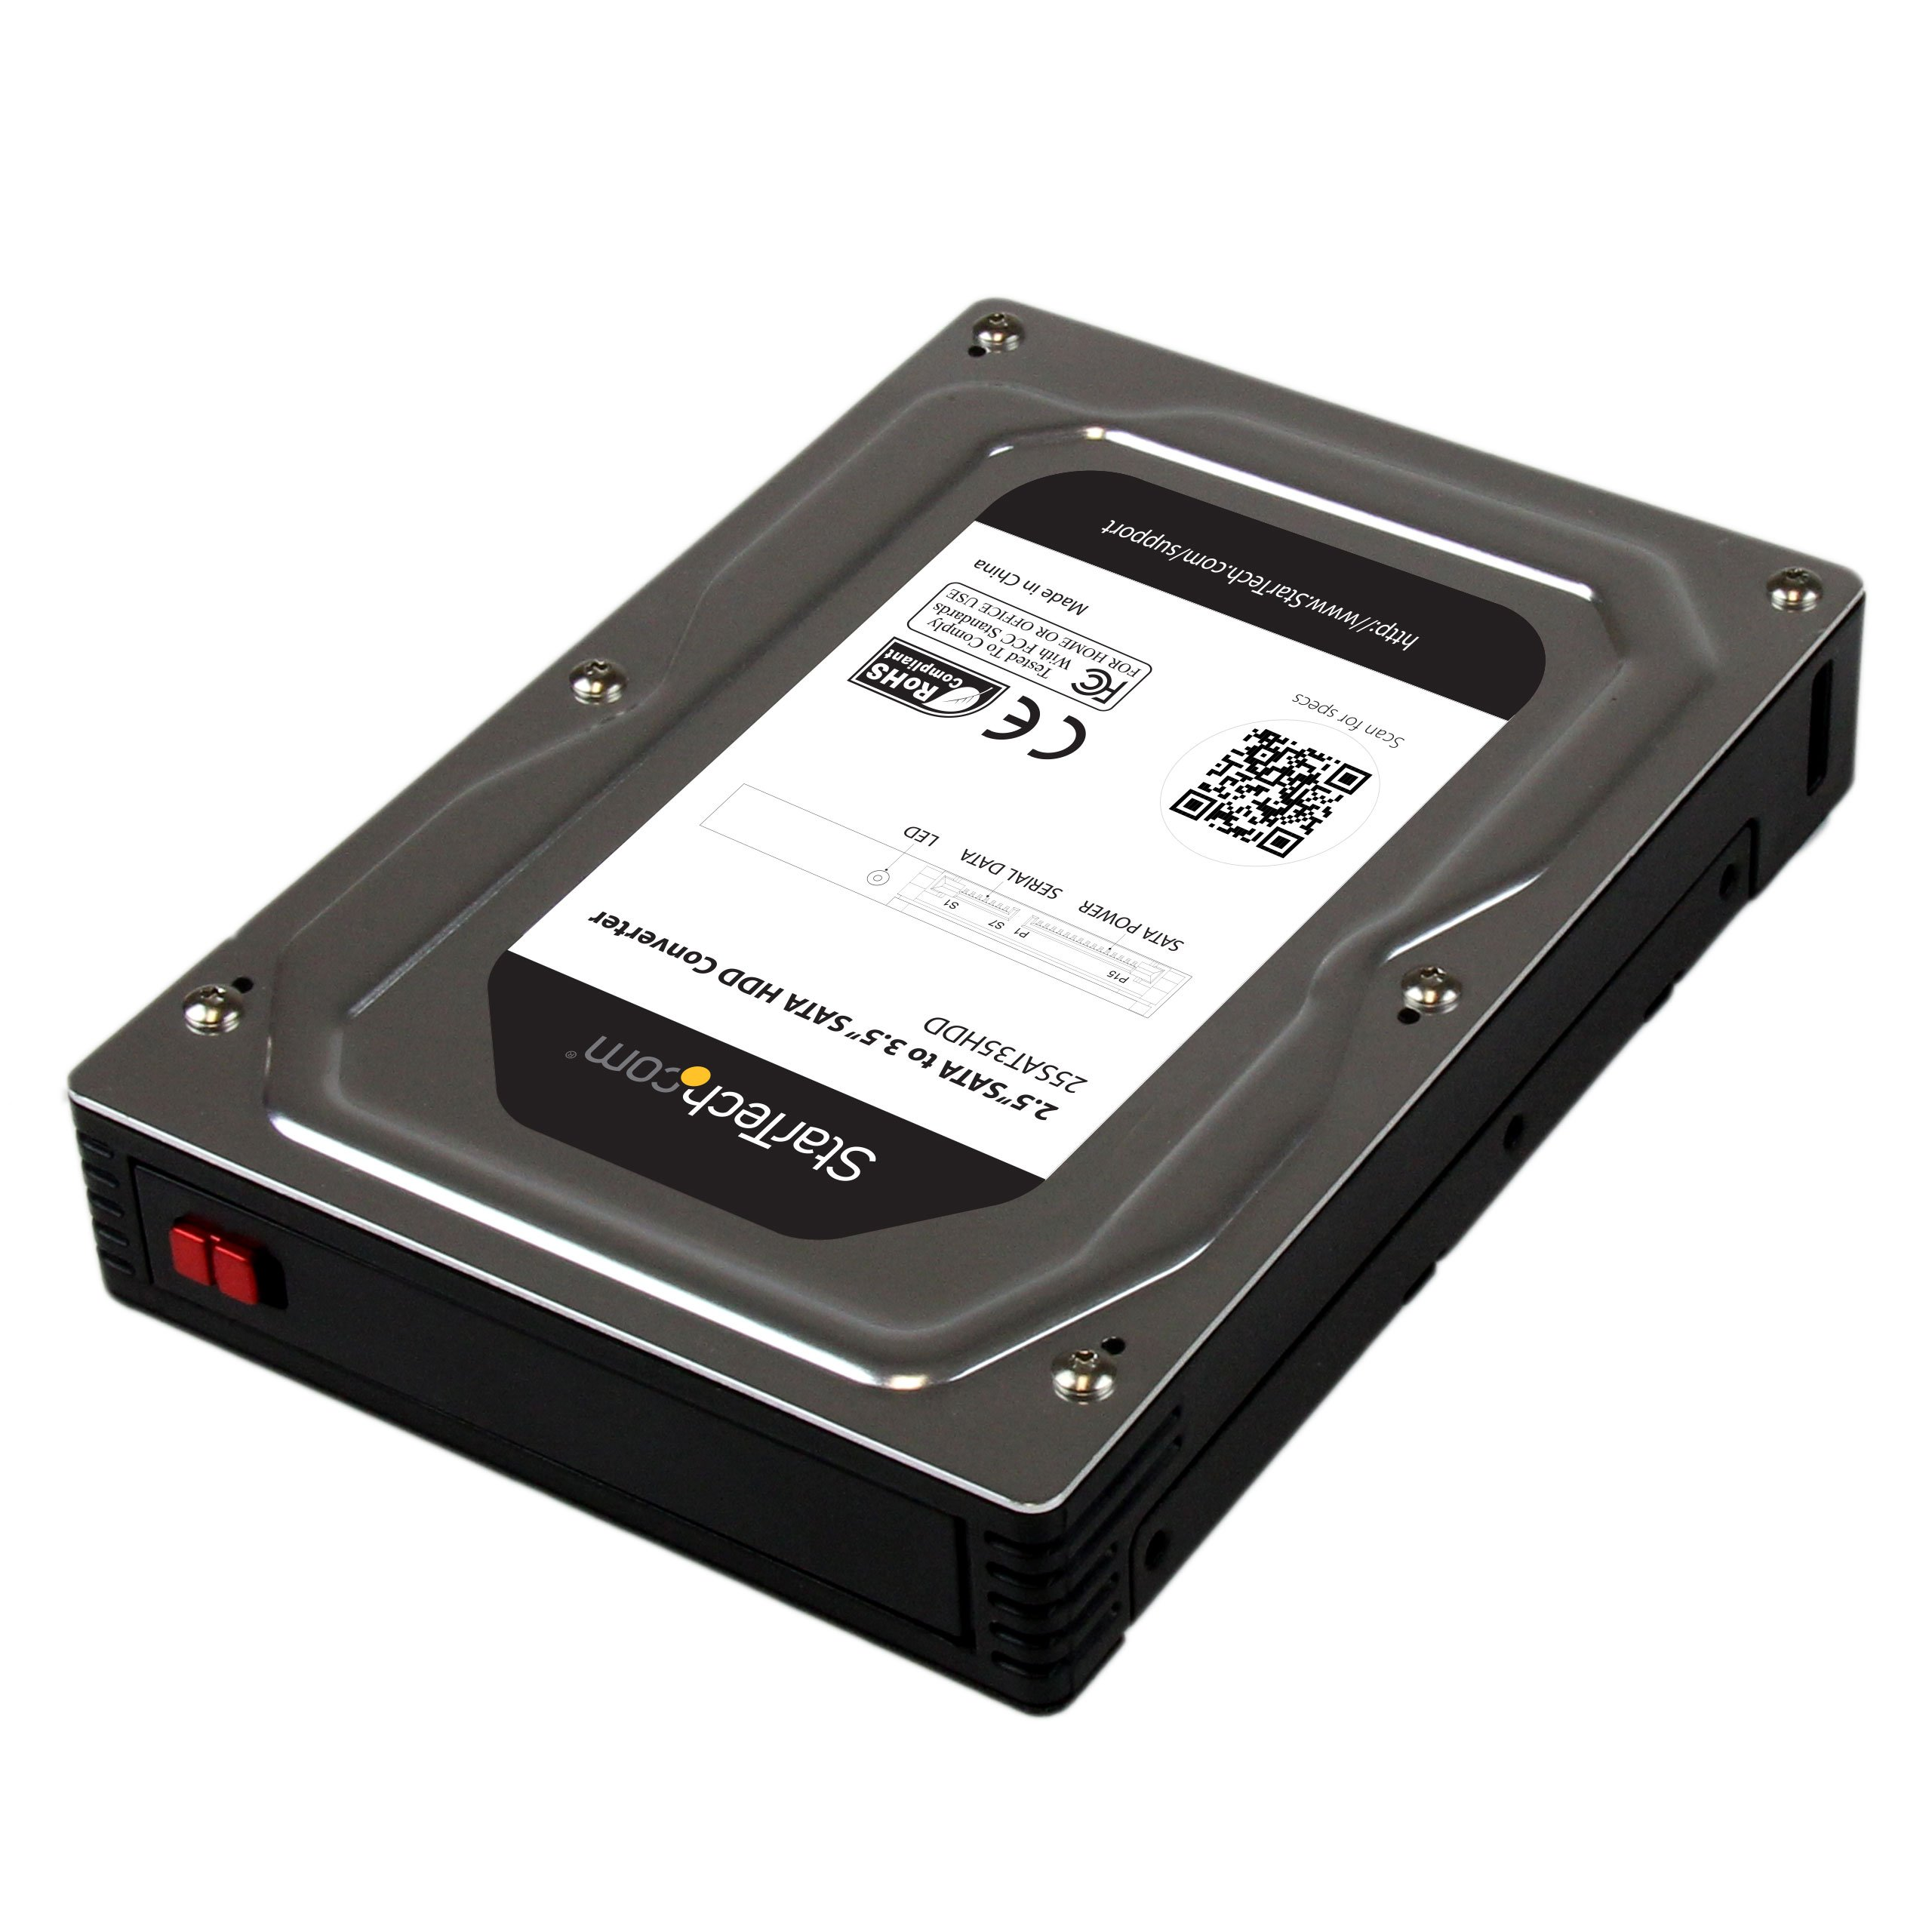 StarTech.com 2.5-Inch to 3.5-Inch SATA Enclosure SSD/HDD Aluminum Hard Drive Adapter (25SAT35HDD)